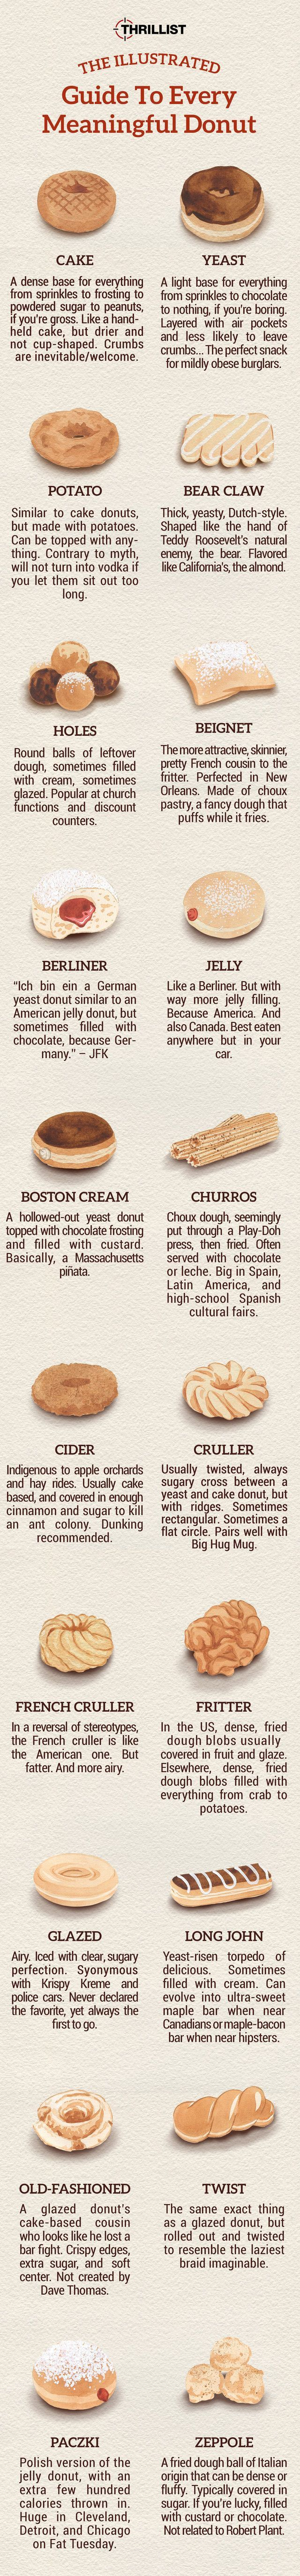 Illustrated Donut Guide - Every Important Donut